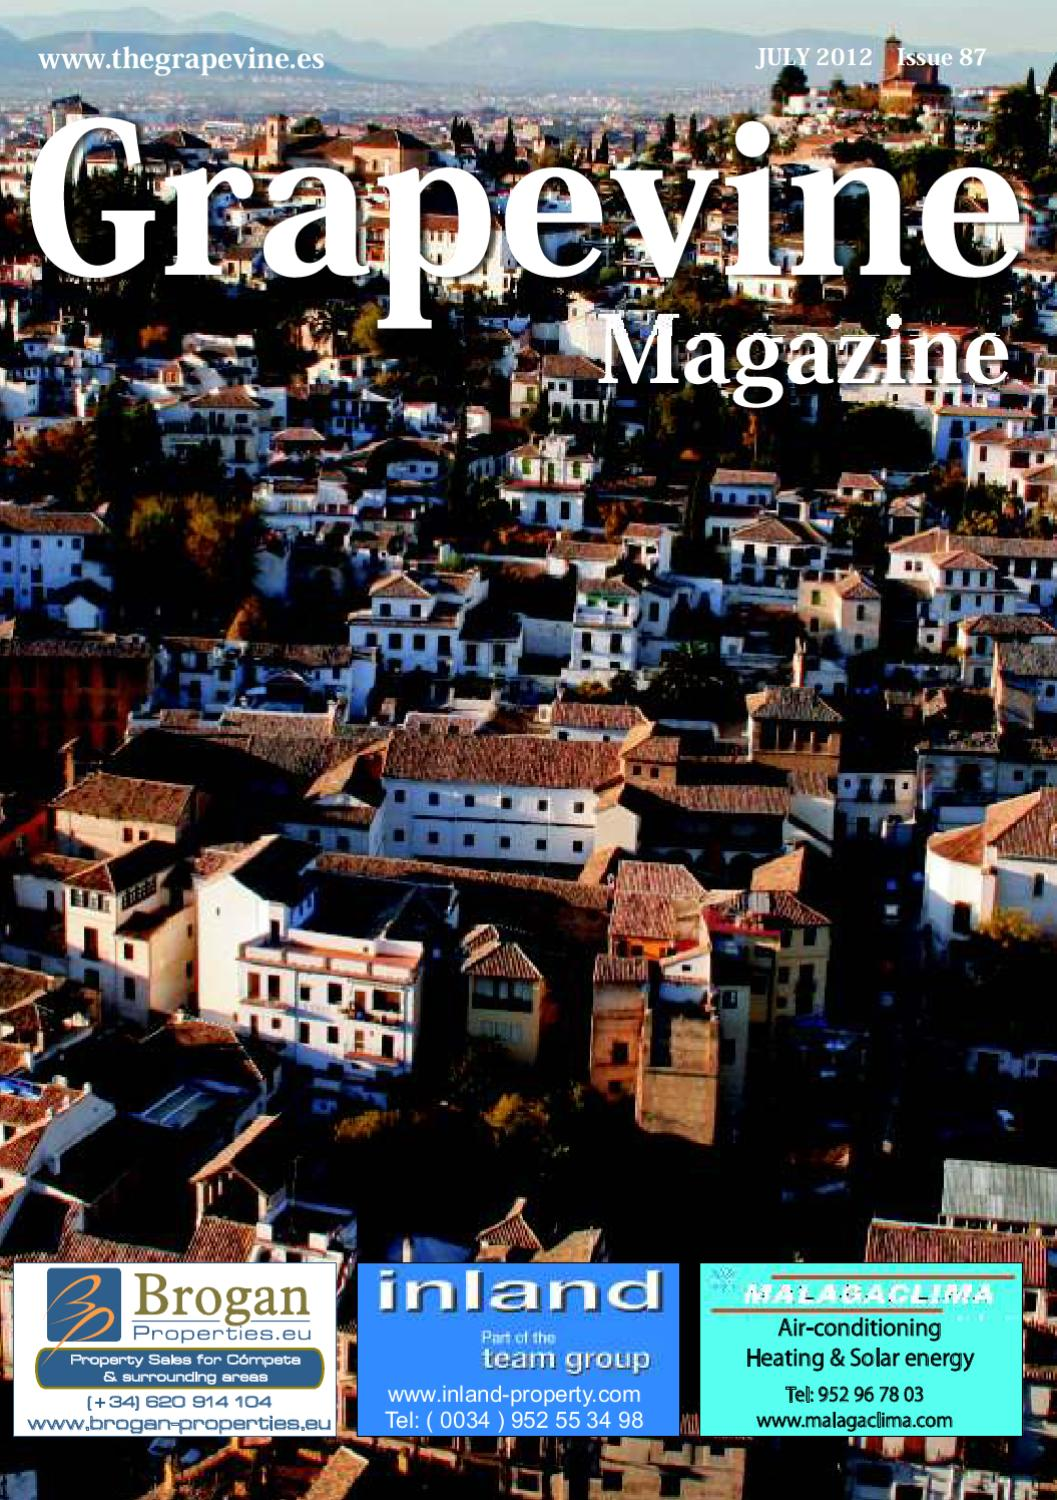 The Grapevine Magazine July 2012 By The Grapevine Magazine